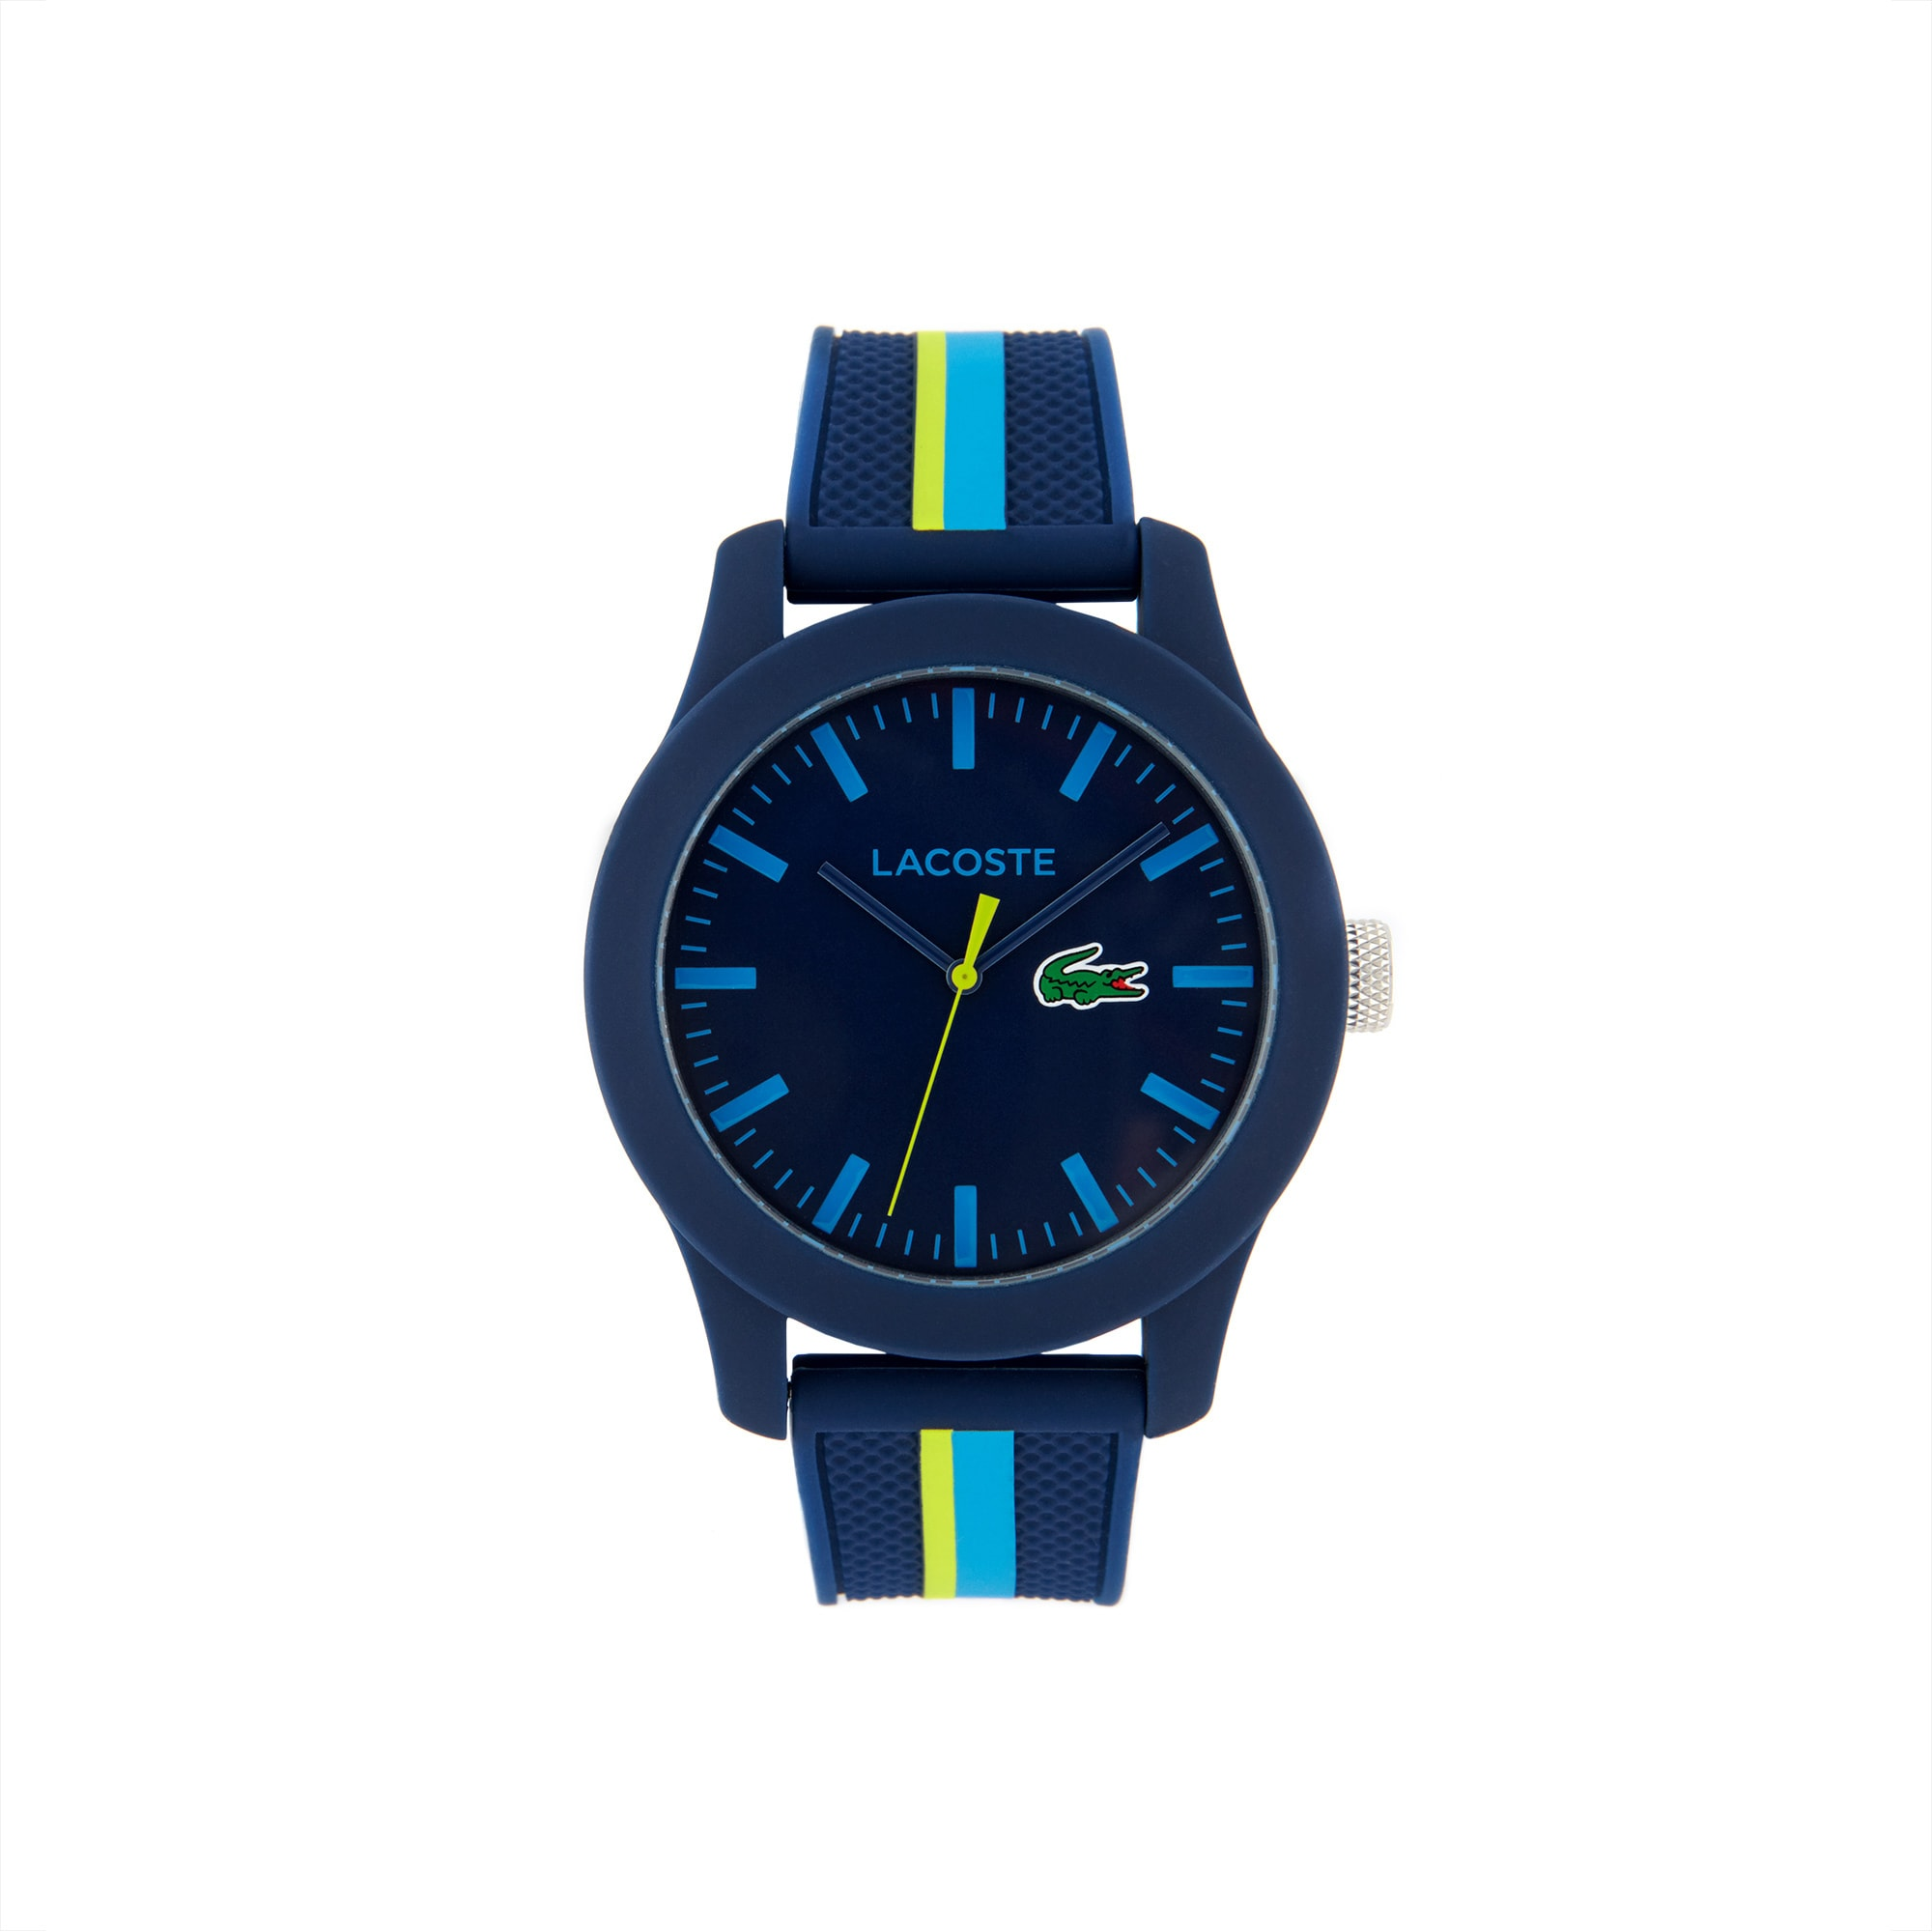 Men's Lacoste 12.12 Holiday Watch with Blue Silicone Strap